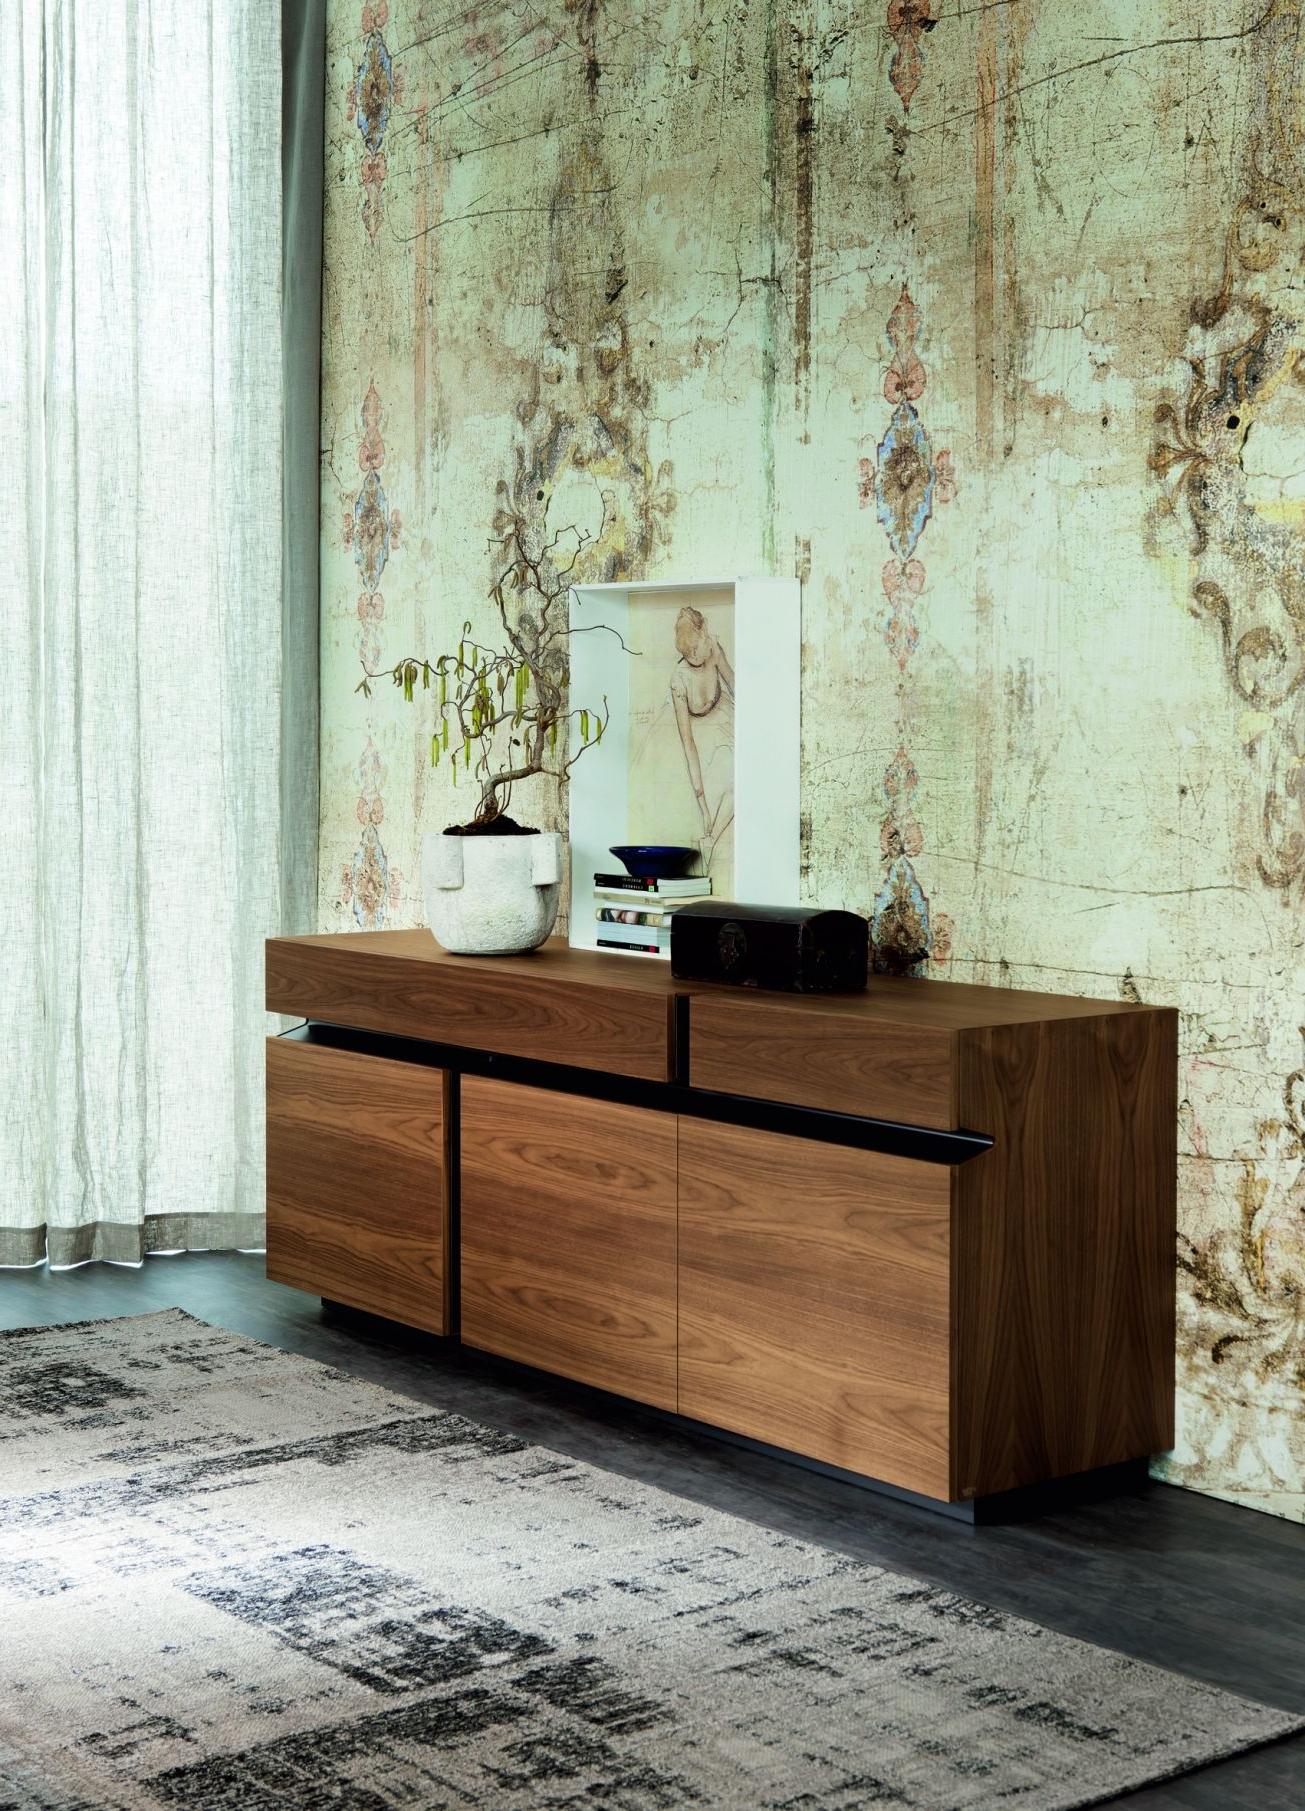 The Prisma Is A Striking Sideboard With 3 Doors And 2 Drawers In Most Recently Released Black Burnt Oak Sideboards (View 15 of 20)